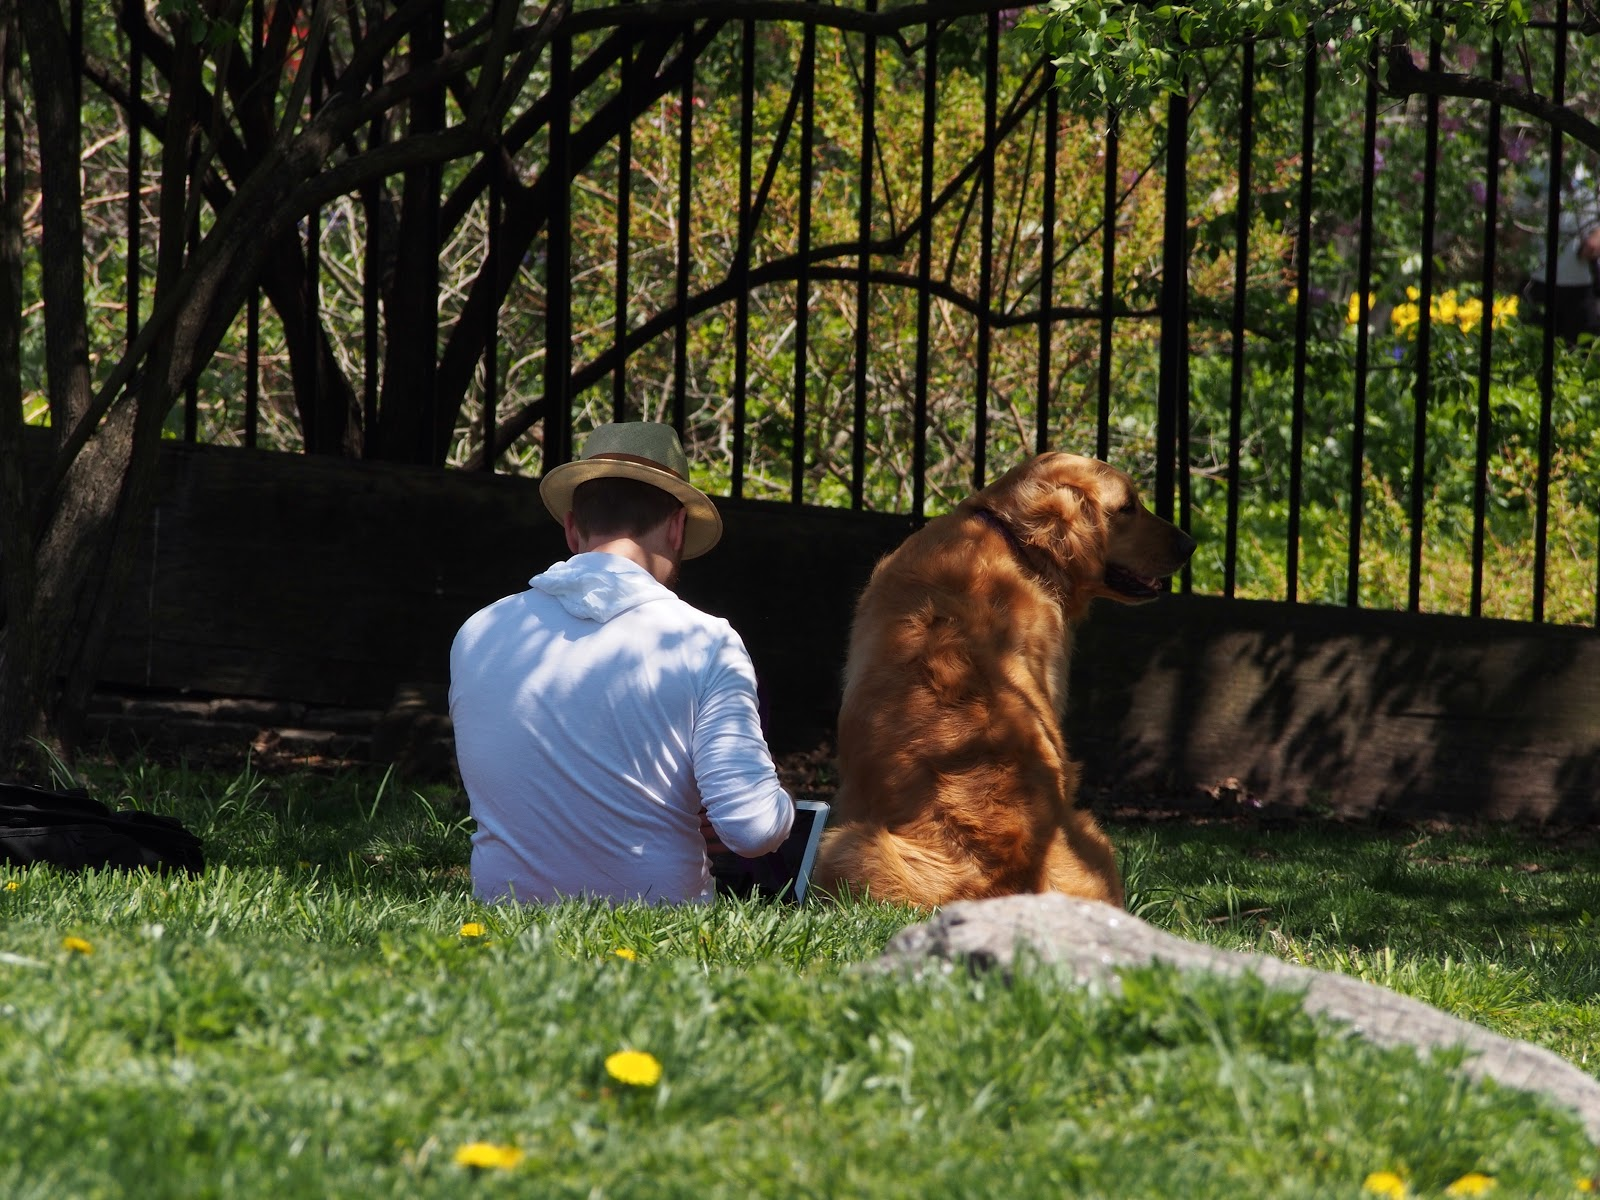 Best Friends #BestFriends #dog  #NYC #CentralPark #mansbestfriend #frombehind 2014